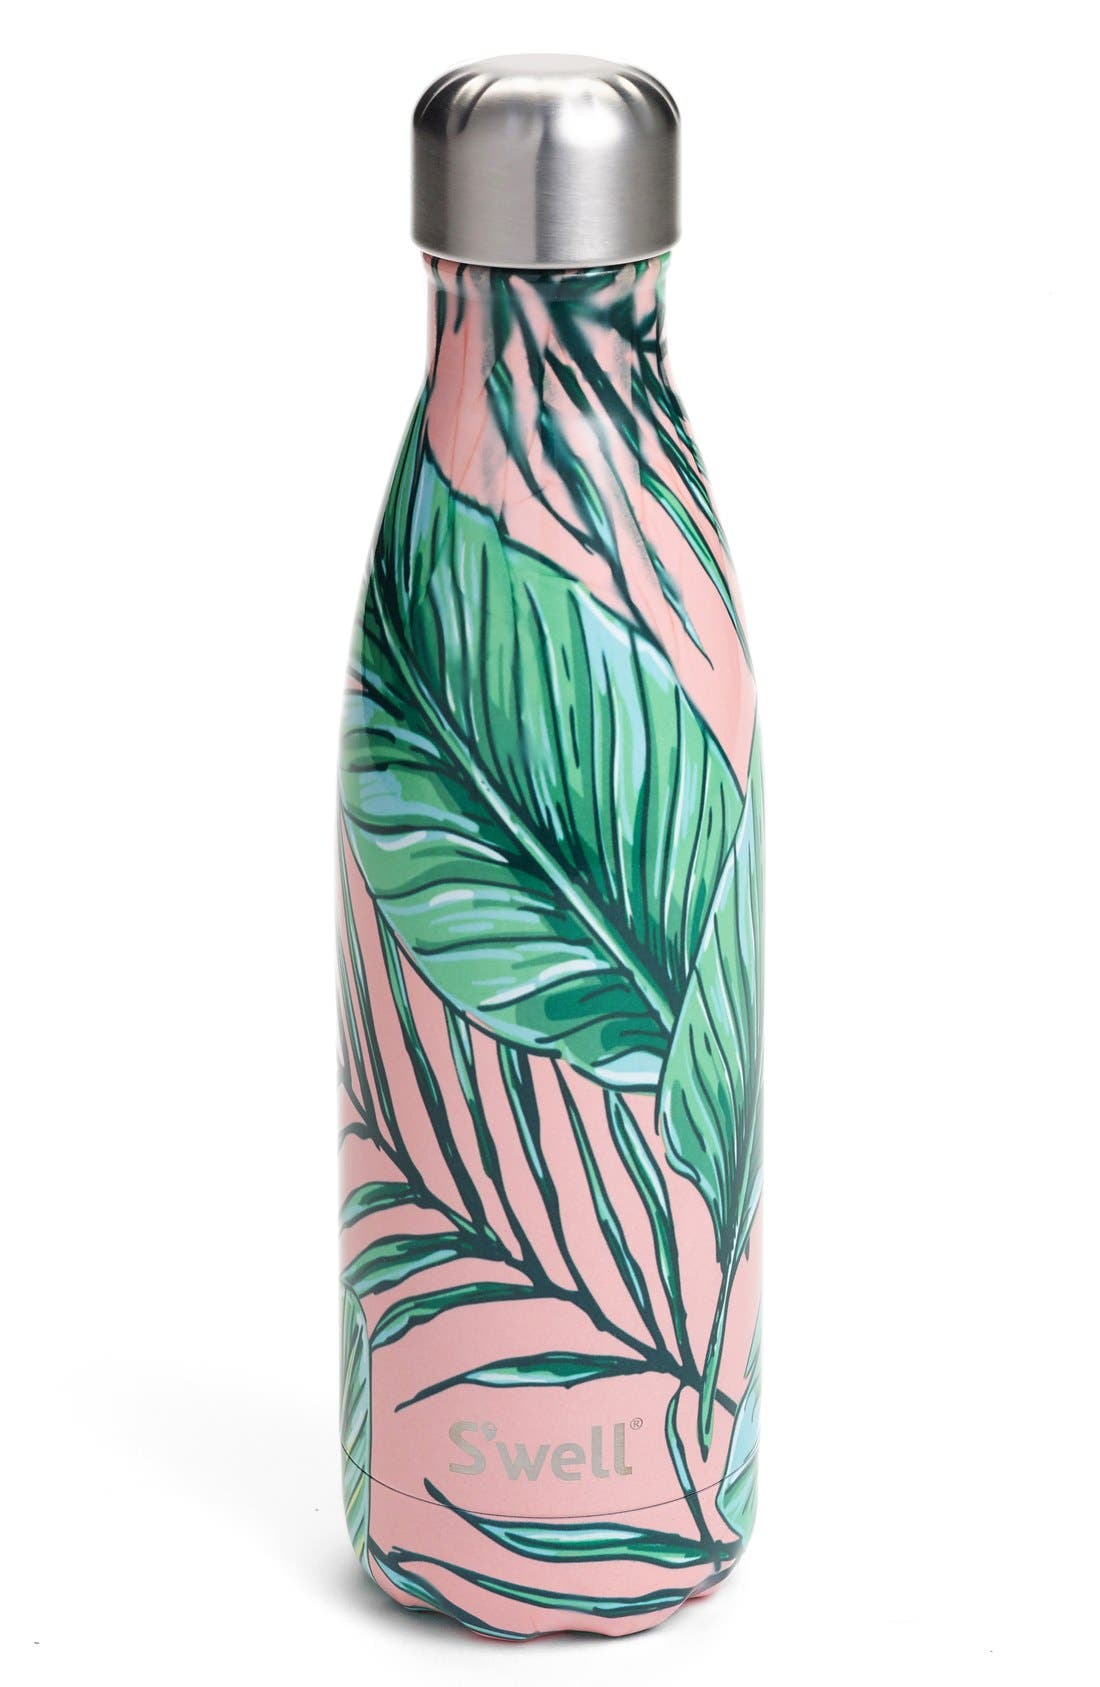 Alternate Image 1 Selected - S'well 'Palm Beach' Stainless Steel Water Bottle